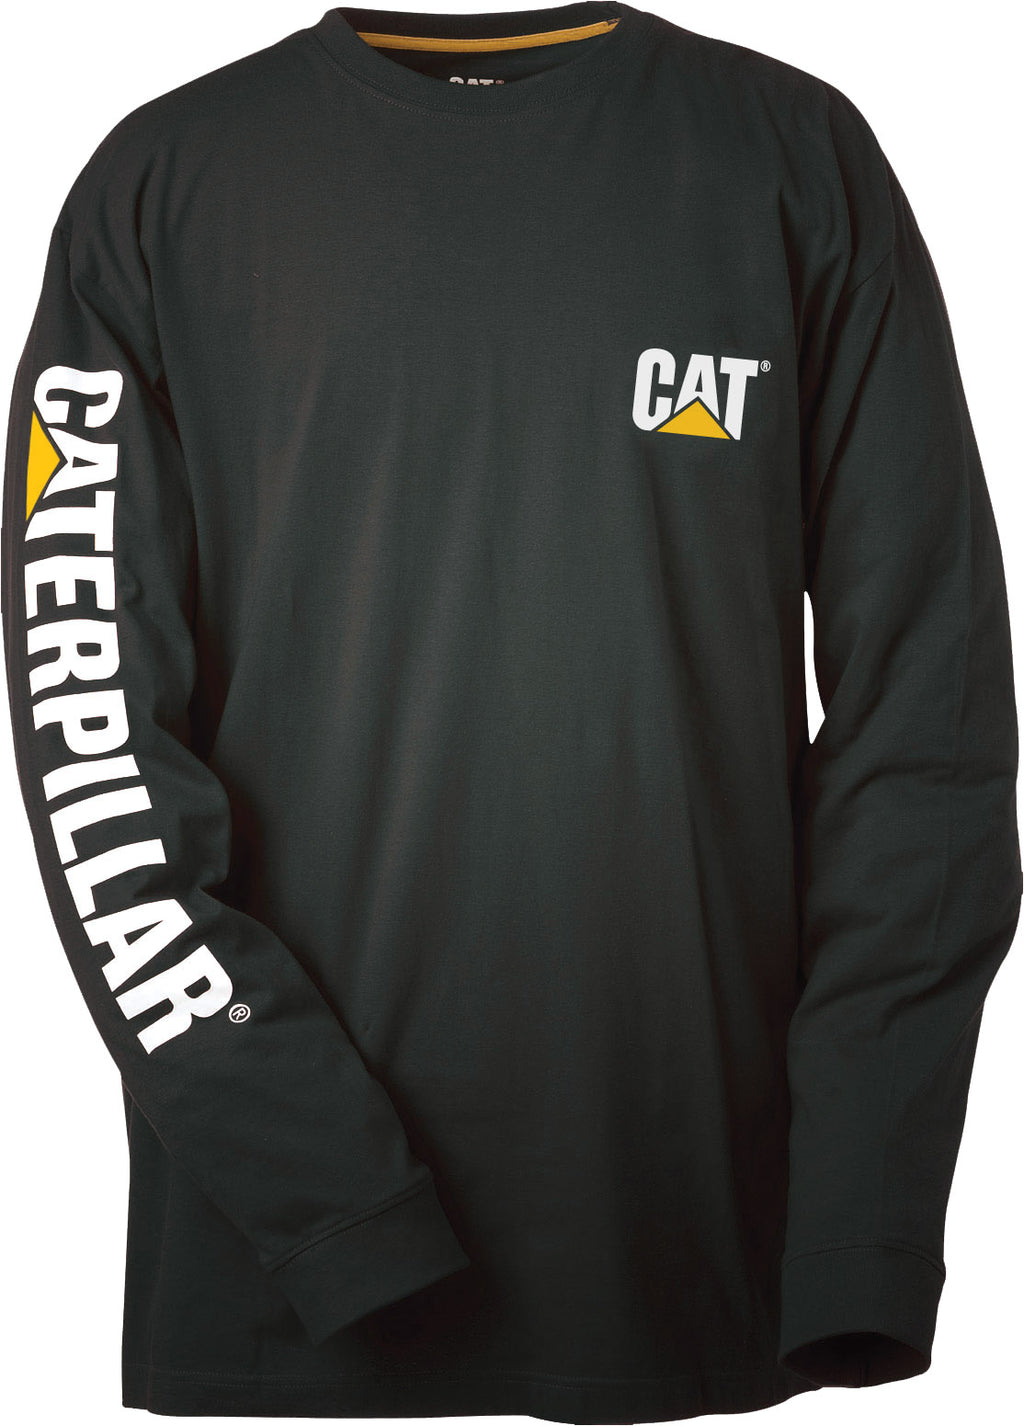 T-Shirt Cat Long Sleeve Trademark Banner Black Xlge